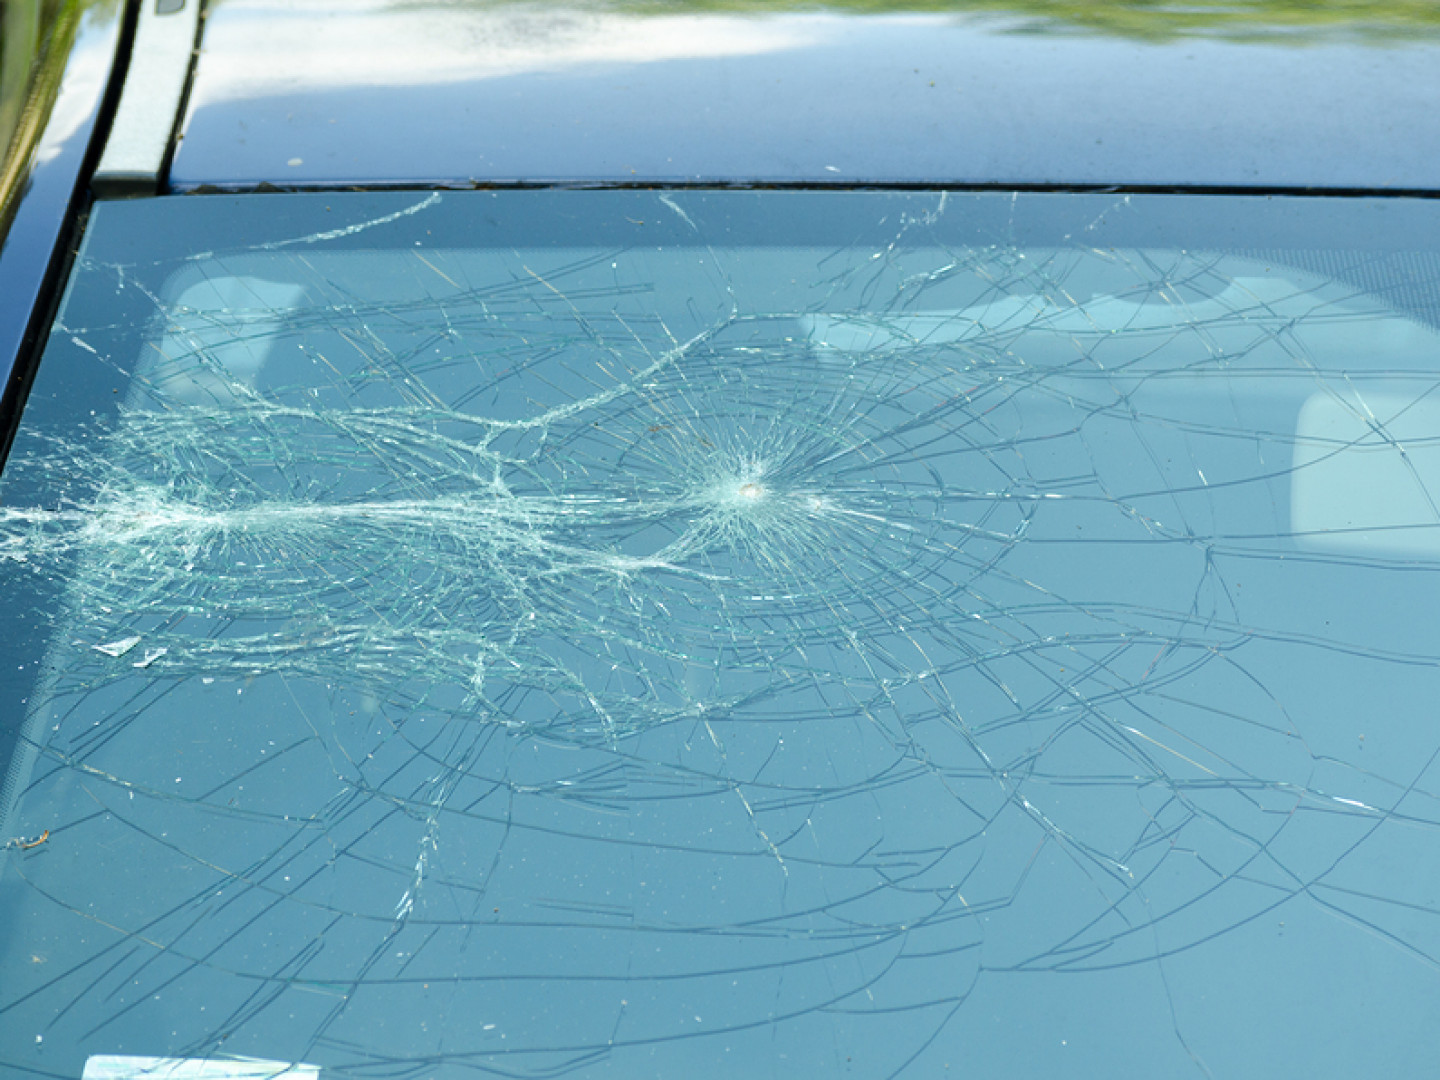 Don't Let Your Crack in Your Windshield Get Worse